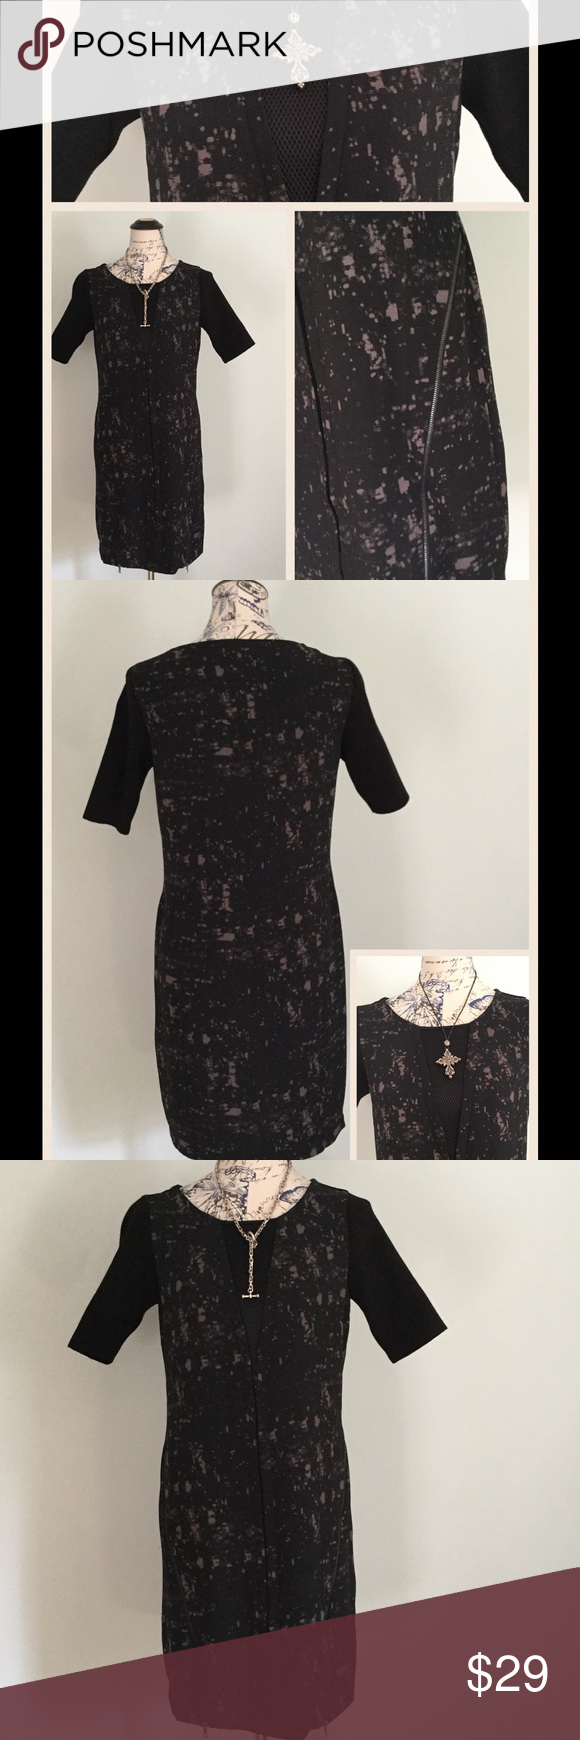 🎈SALE 🎈Ellie Tahari Design Nation Sheath Dress Ellie Tahari for Design Nation Mixed Media Sheath Dress-With Short Sleeves and Zipper detail in front panel. Machine Wash- Flat Dry- New without tags Ellie Tahari for Design Nation Dresses